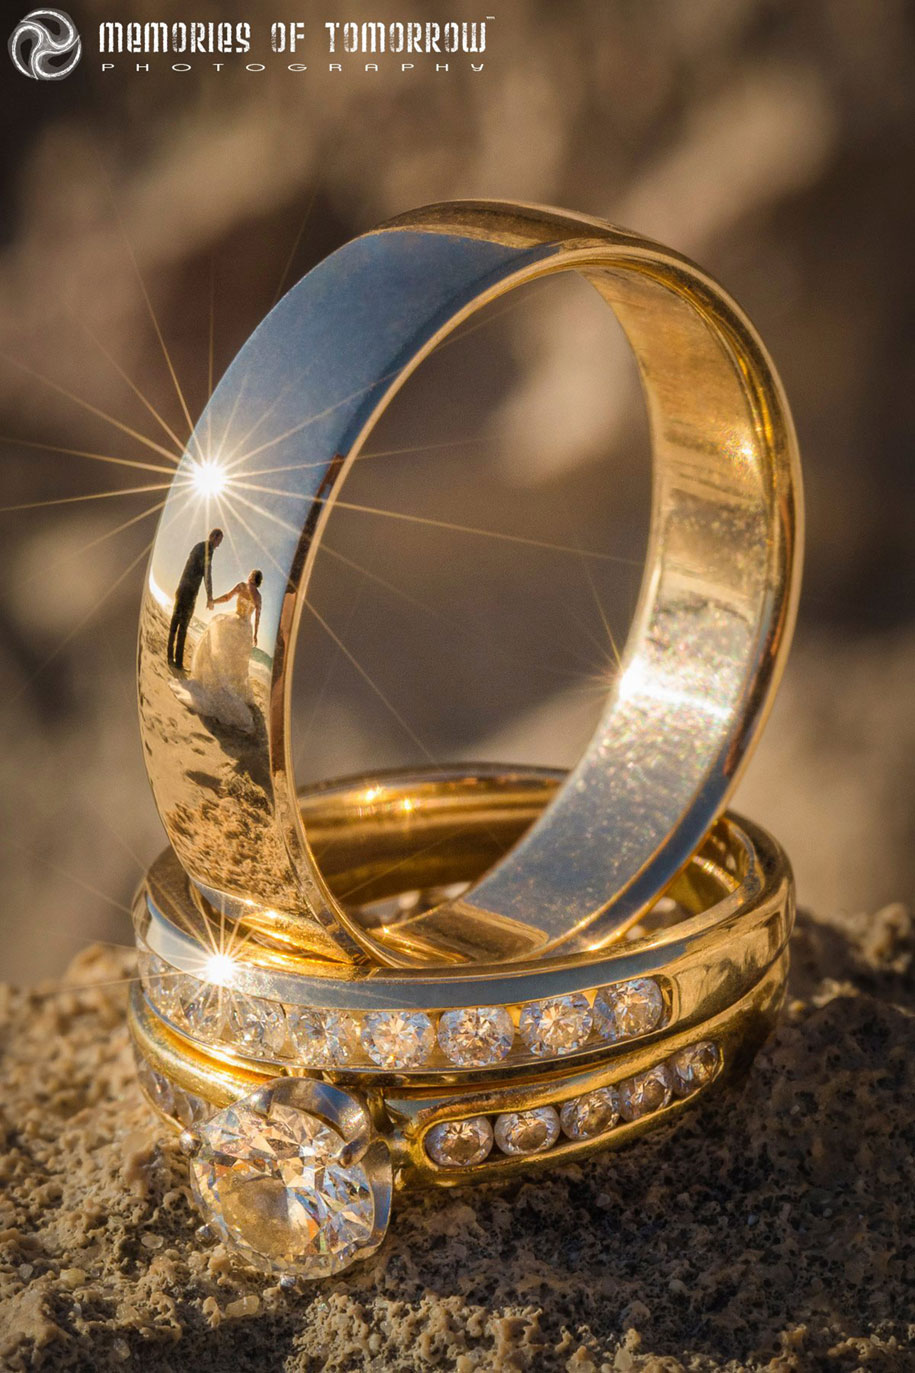 eyescapes-photography-eye-reflection-wedding-photography-peter-adams-shawn-9 (10)